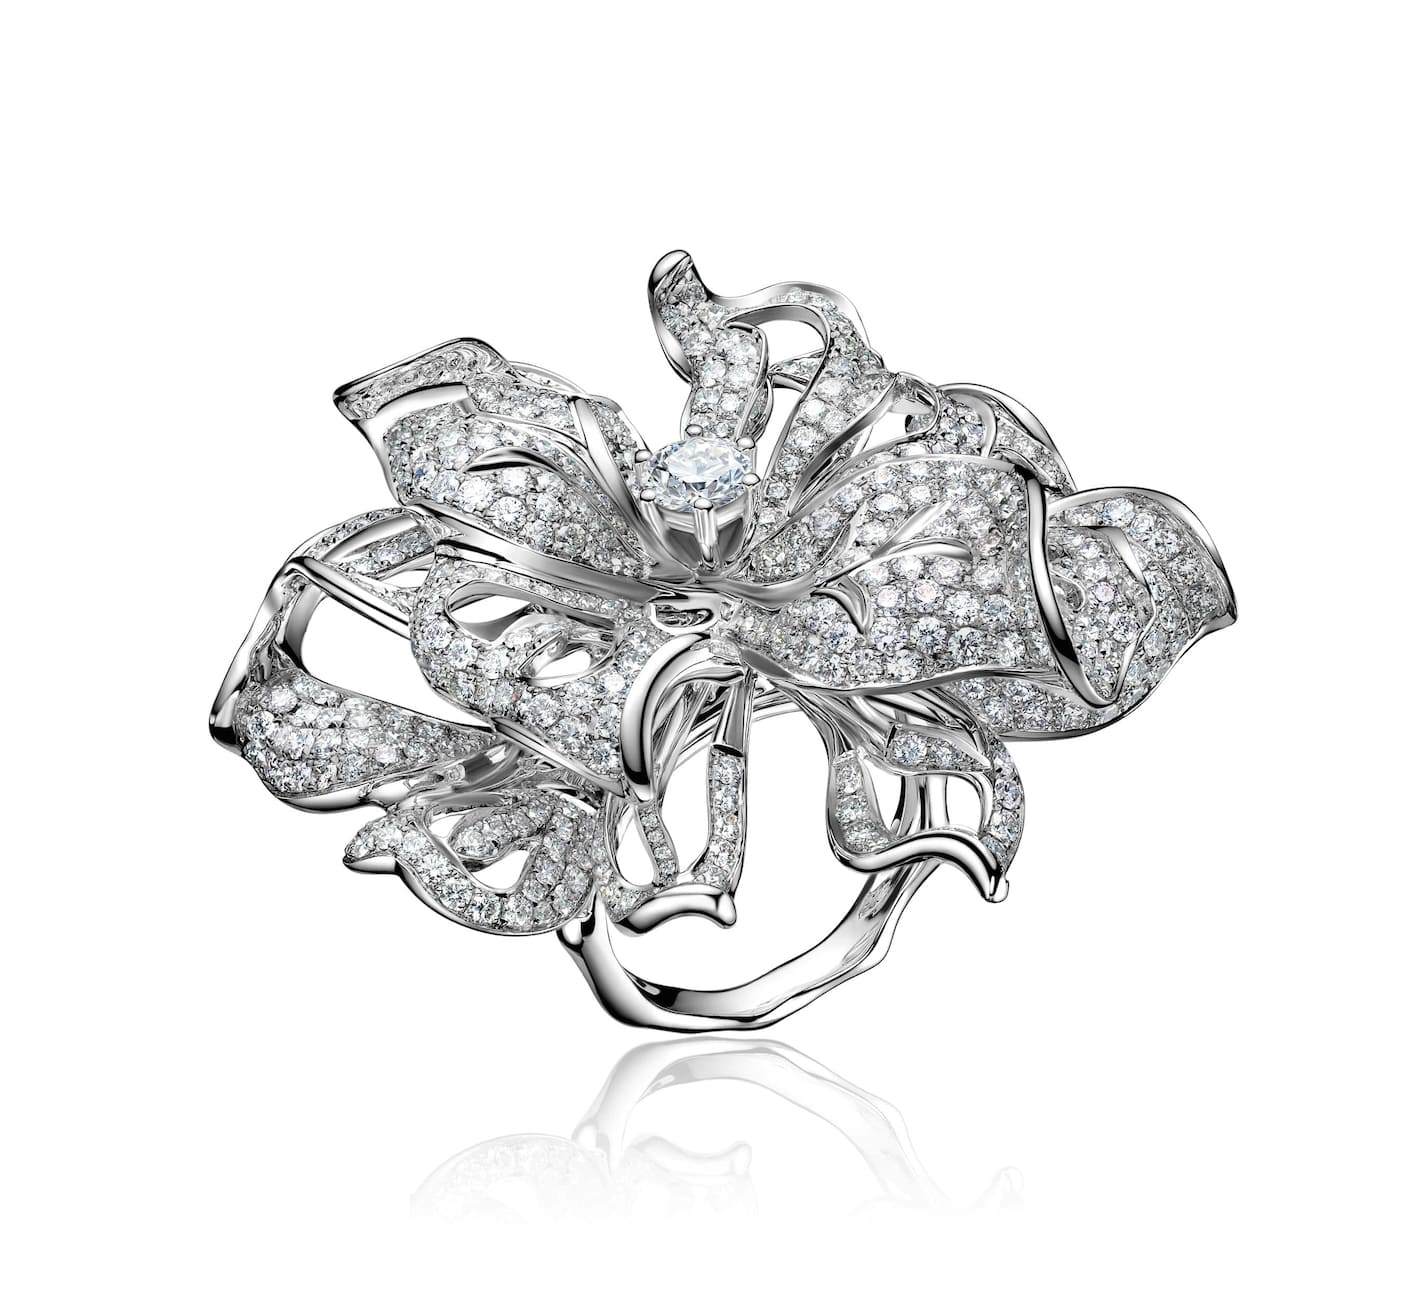 Sarah-Ho-for-Kimberlite-Fortune-of-Blooming-Flowers-Ring